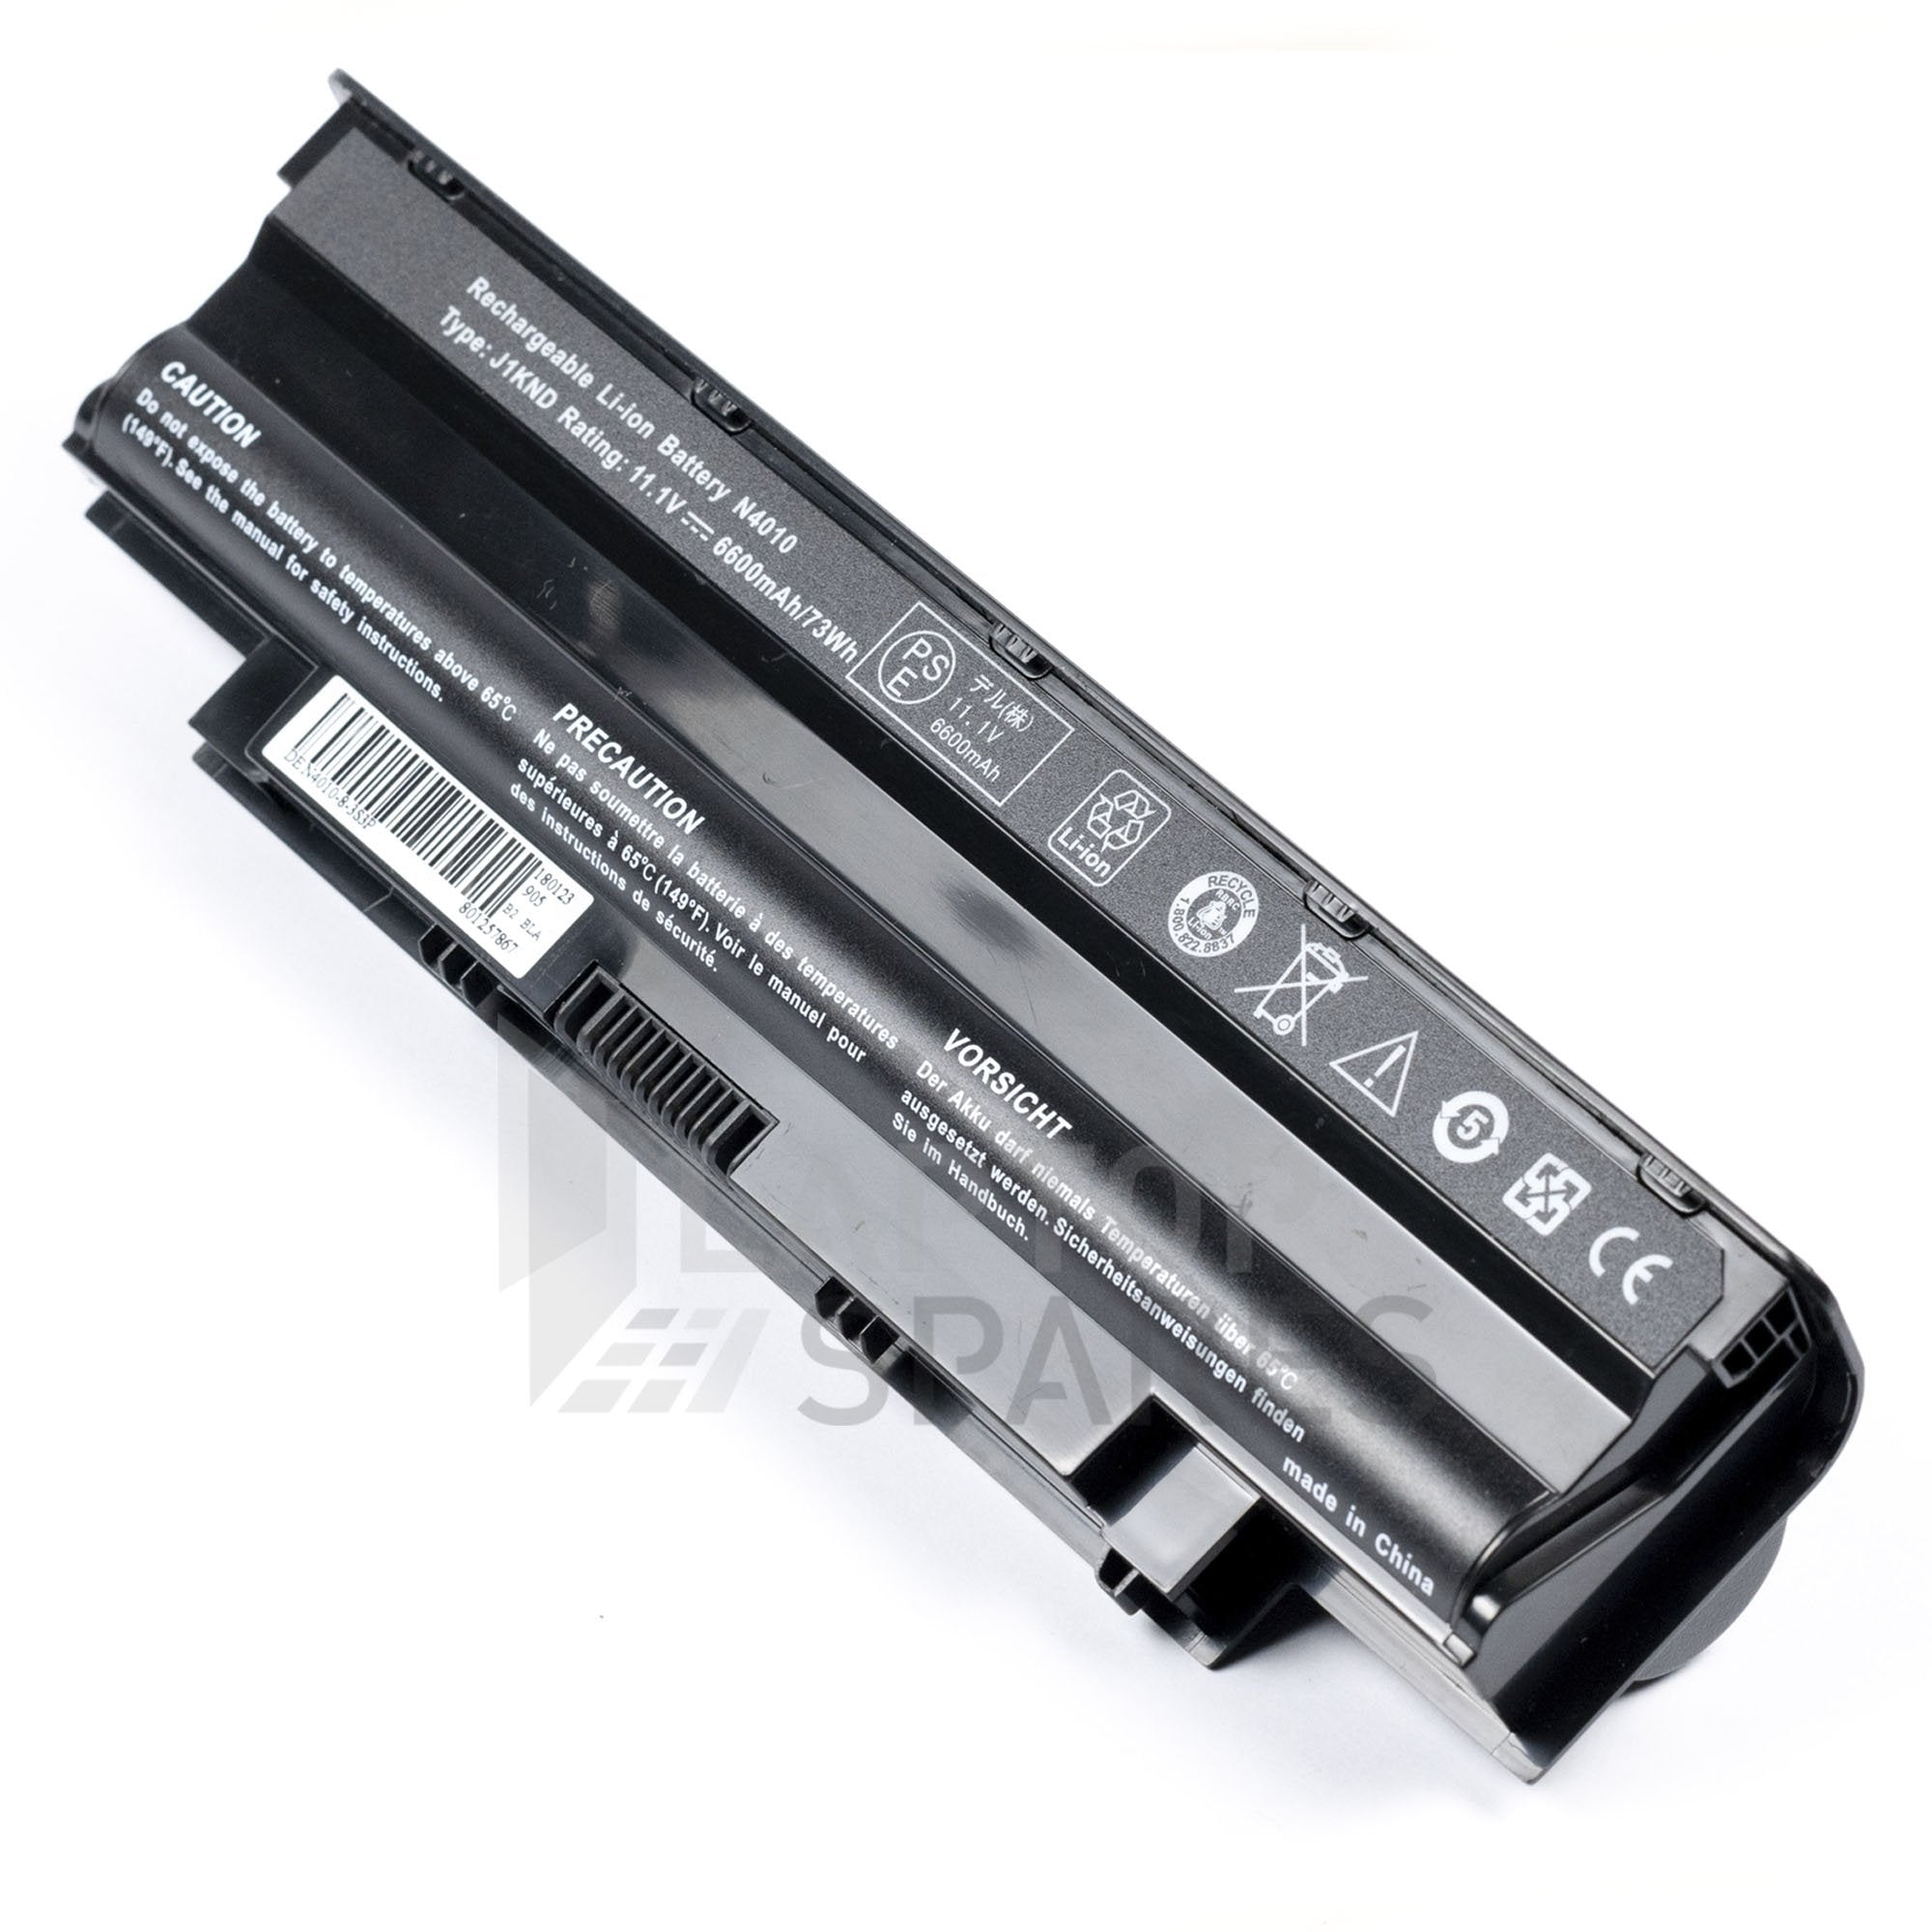 Dell Inspiron 13R 3010-D460HK 6600mAh 9 Cell Battery